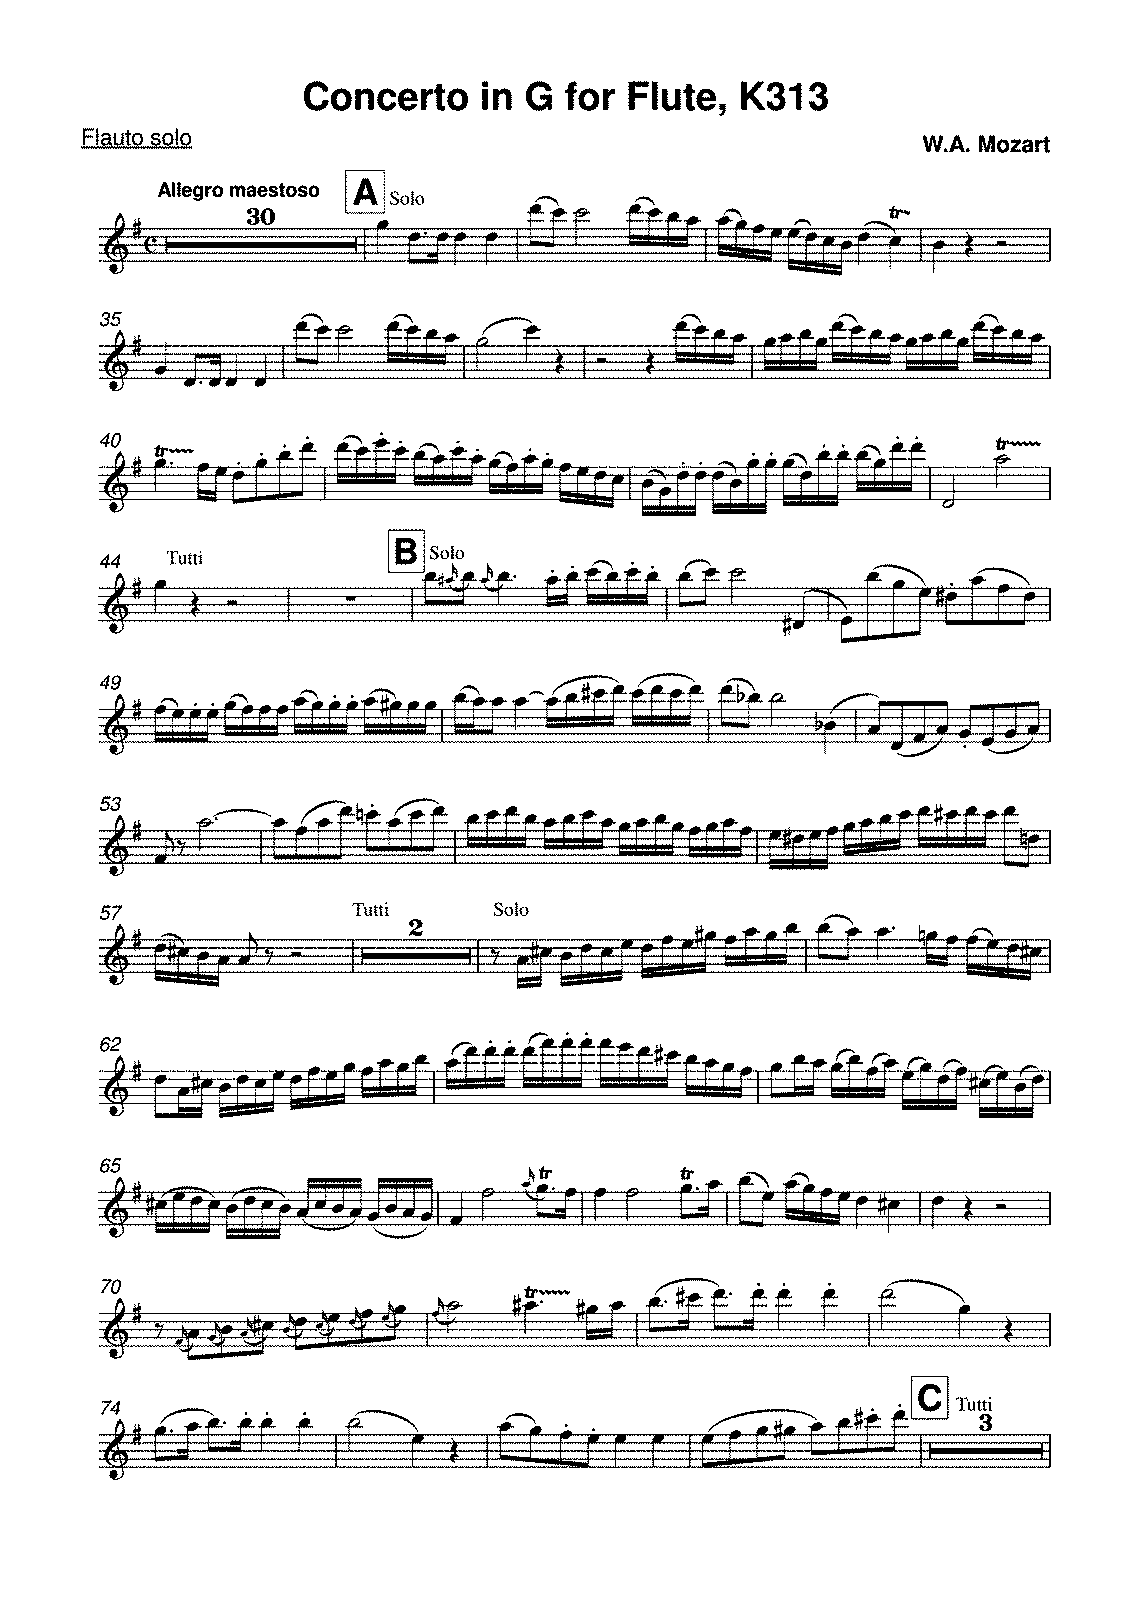 PMLP39820-Concert in G for Flute, K313 Flauto solo.pdf